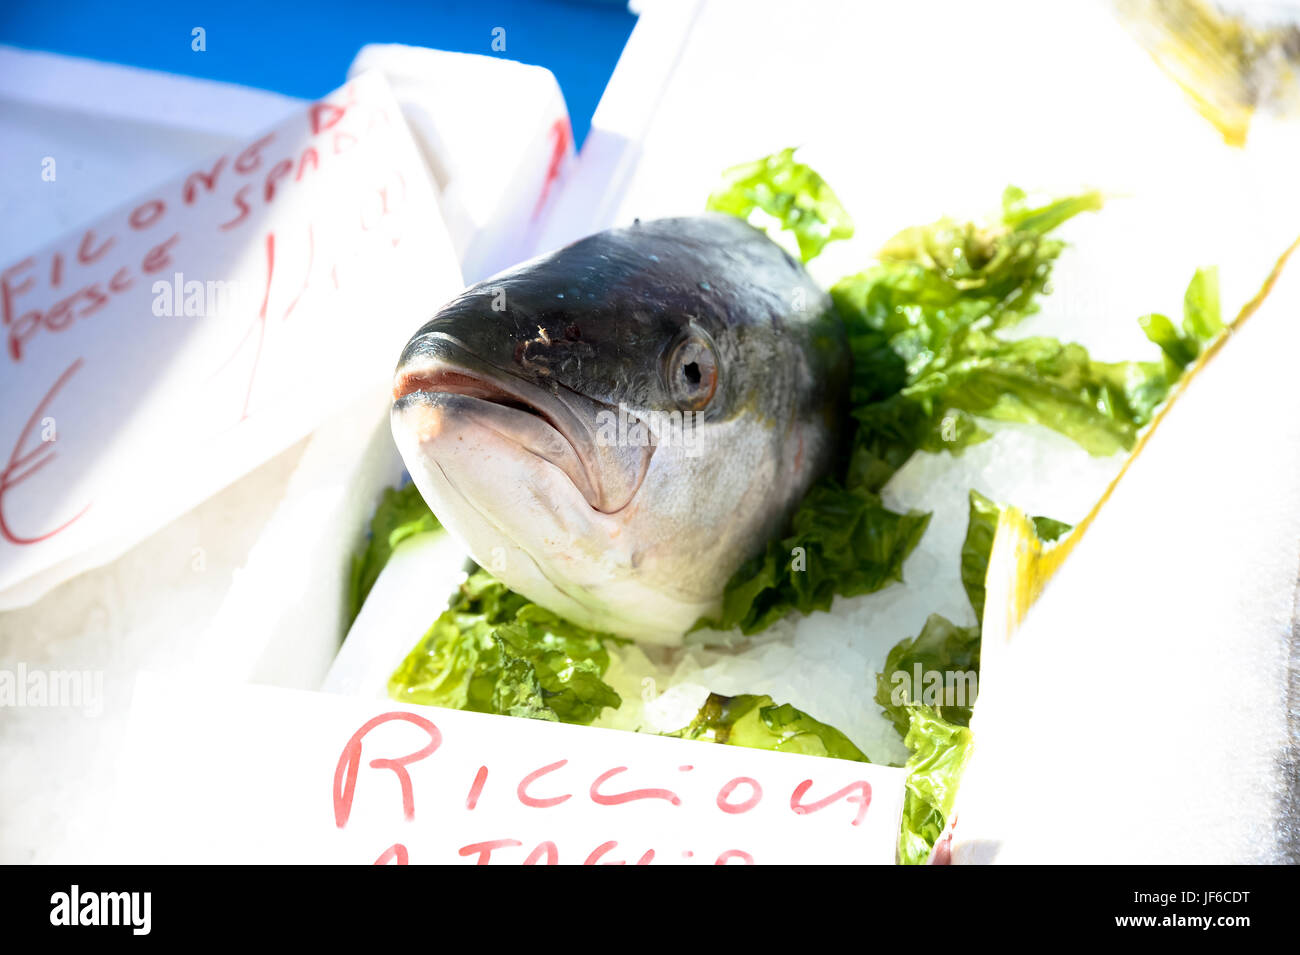 Ricciola in market - Stock Image